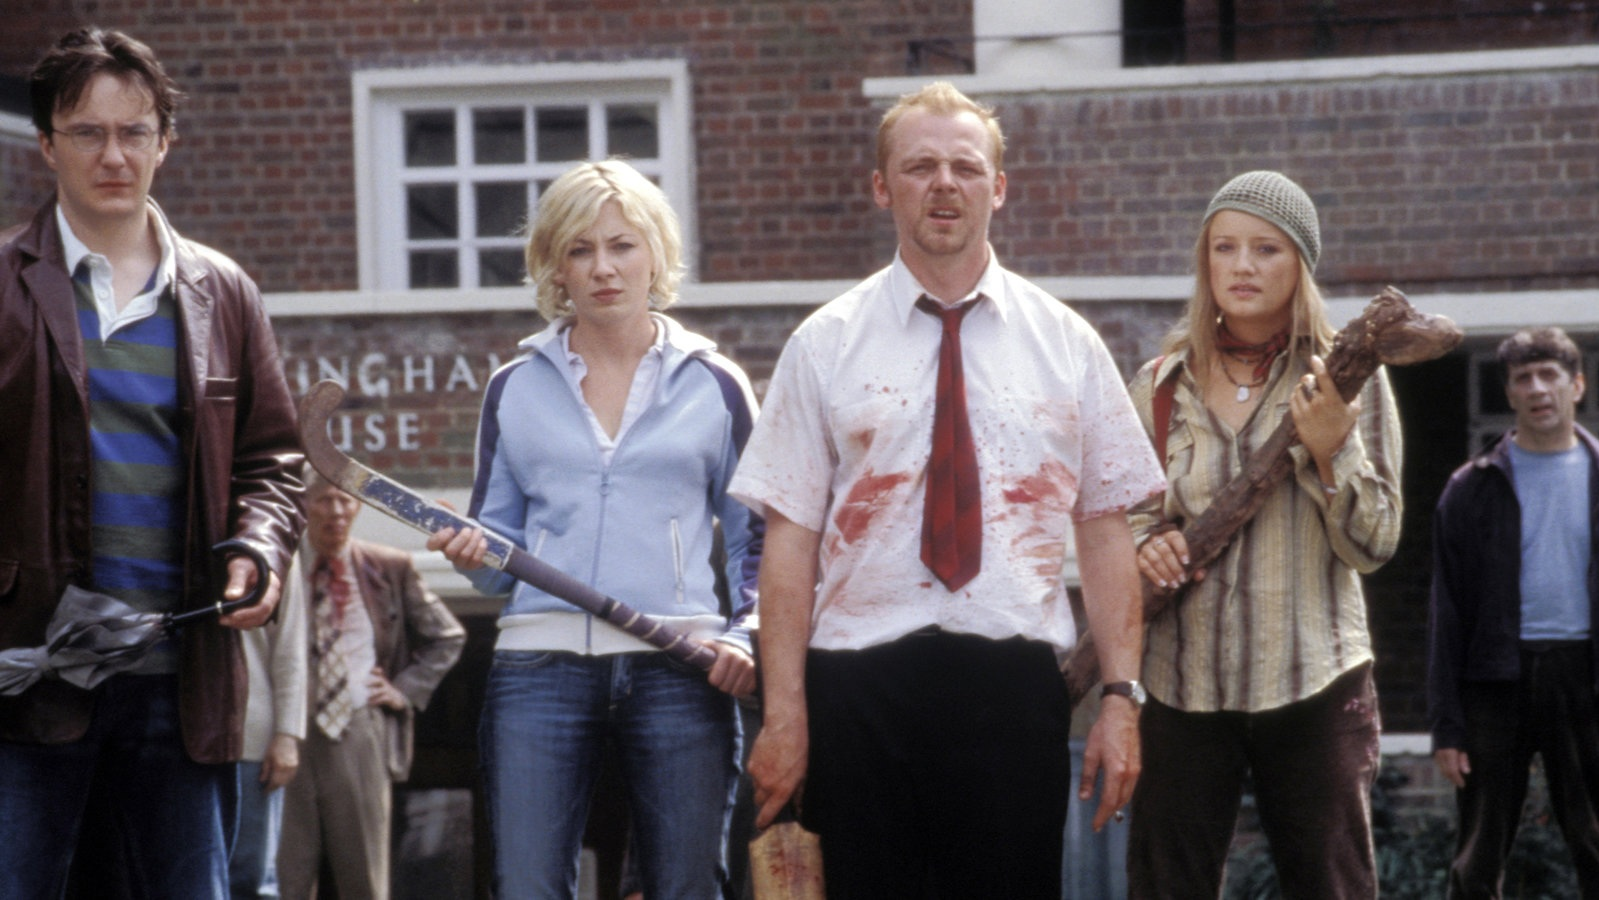 #22) Shaun of the Dead - (2004 - dir. Edgar Wright)